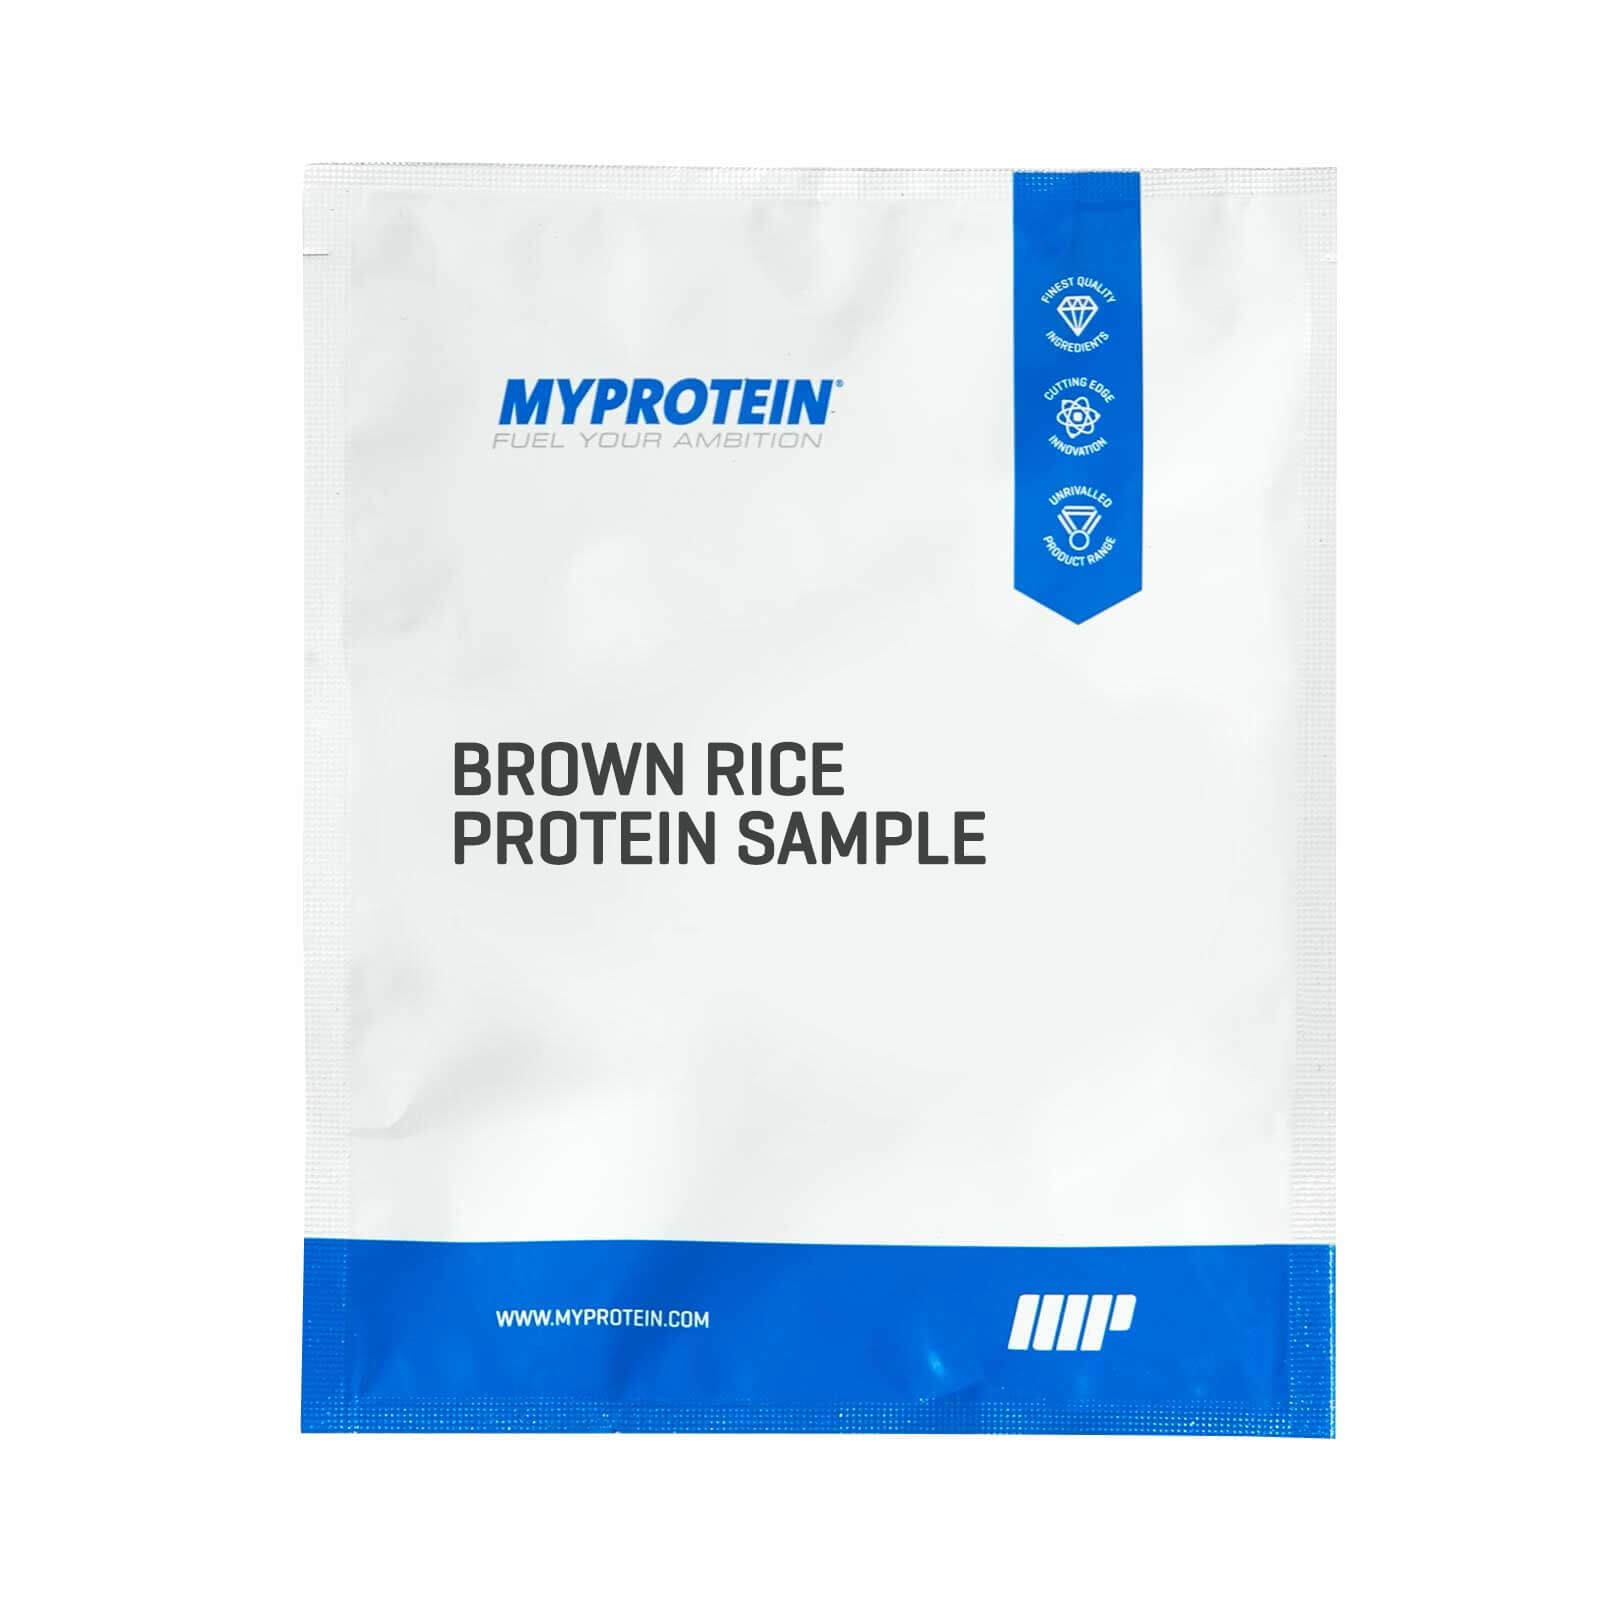 Brown Rice Protein - Chocolate Stevia - 1.05oz (Sample) (USA)